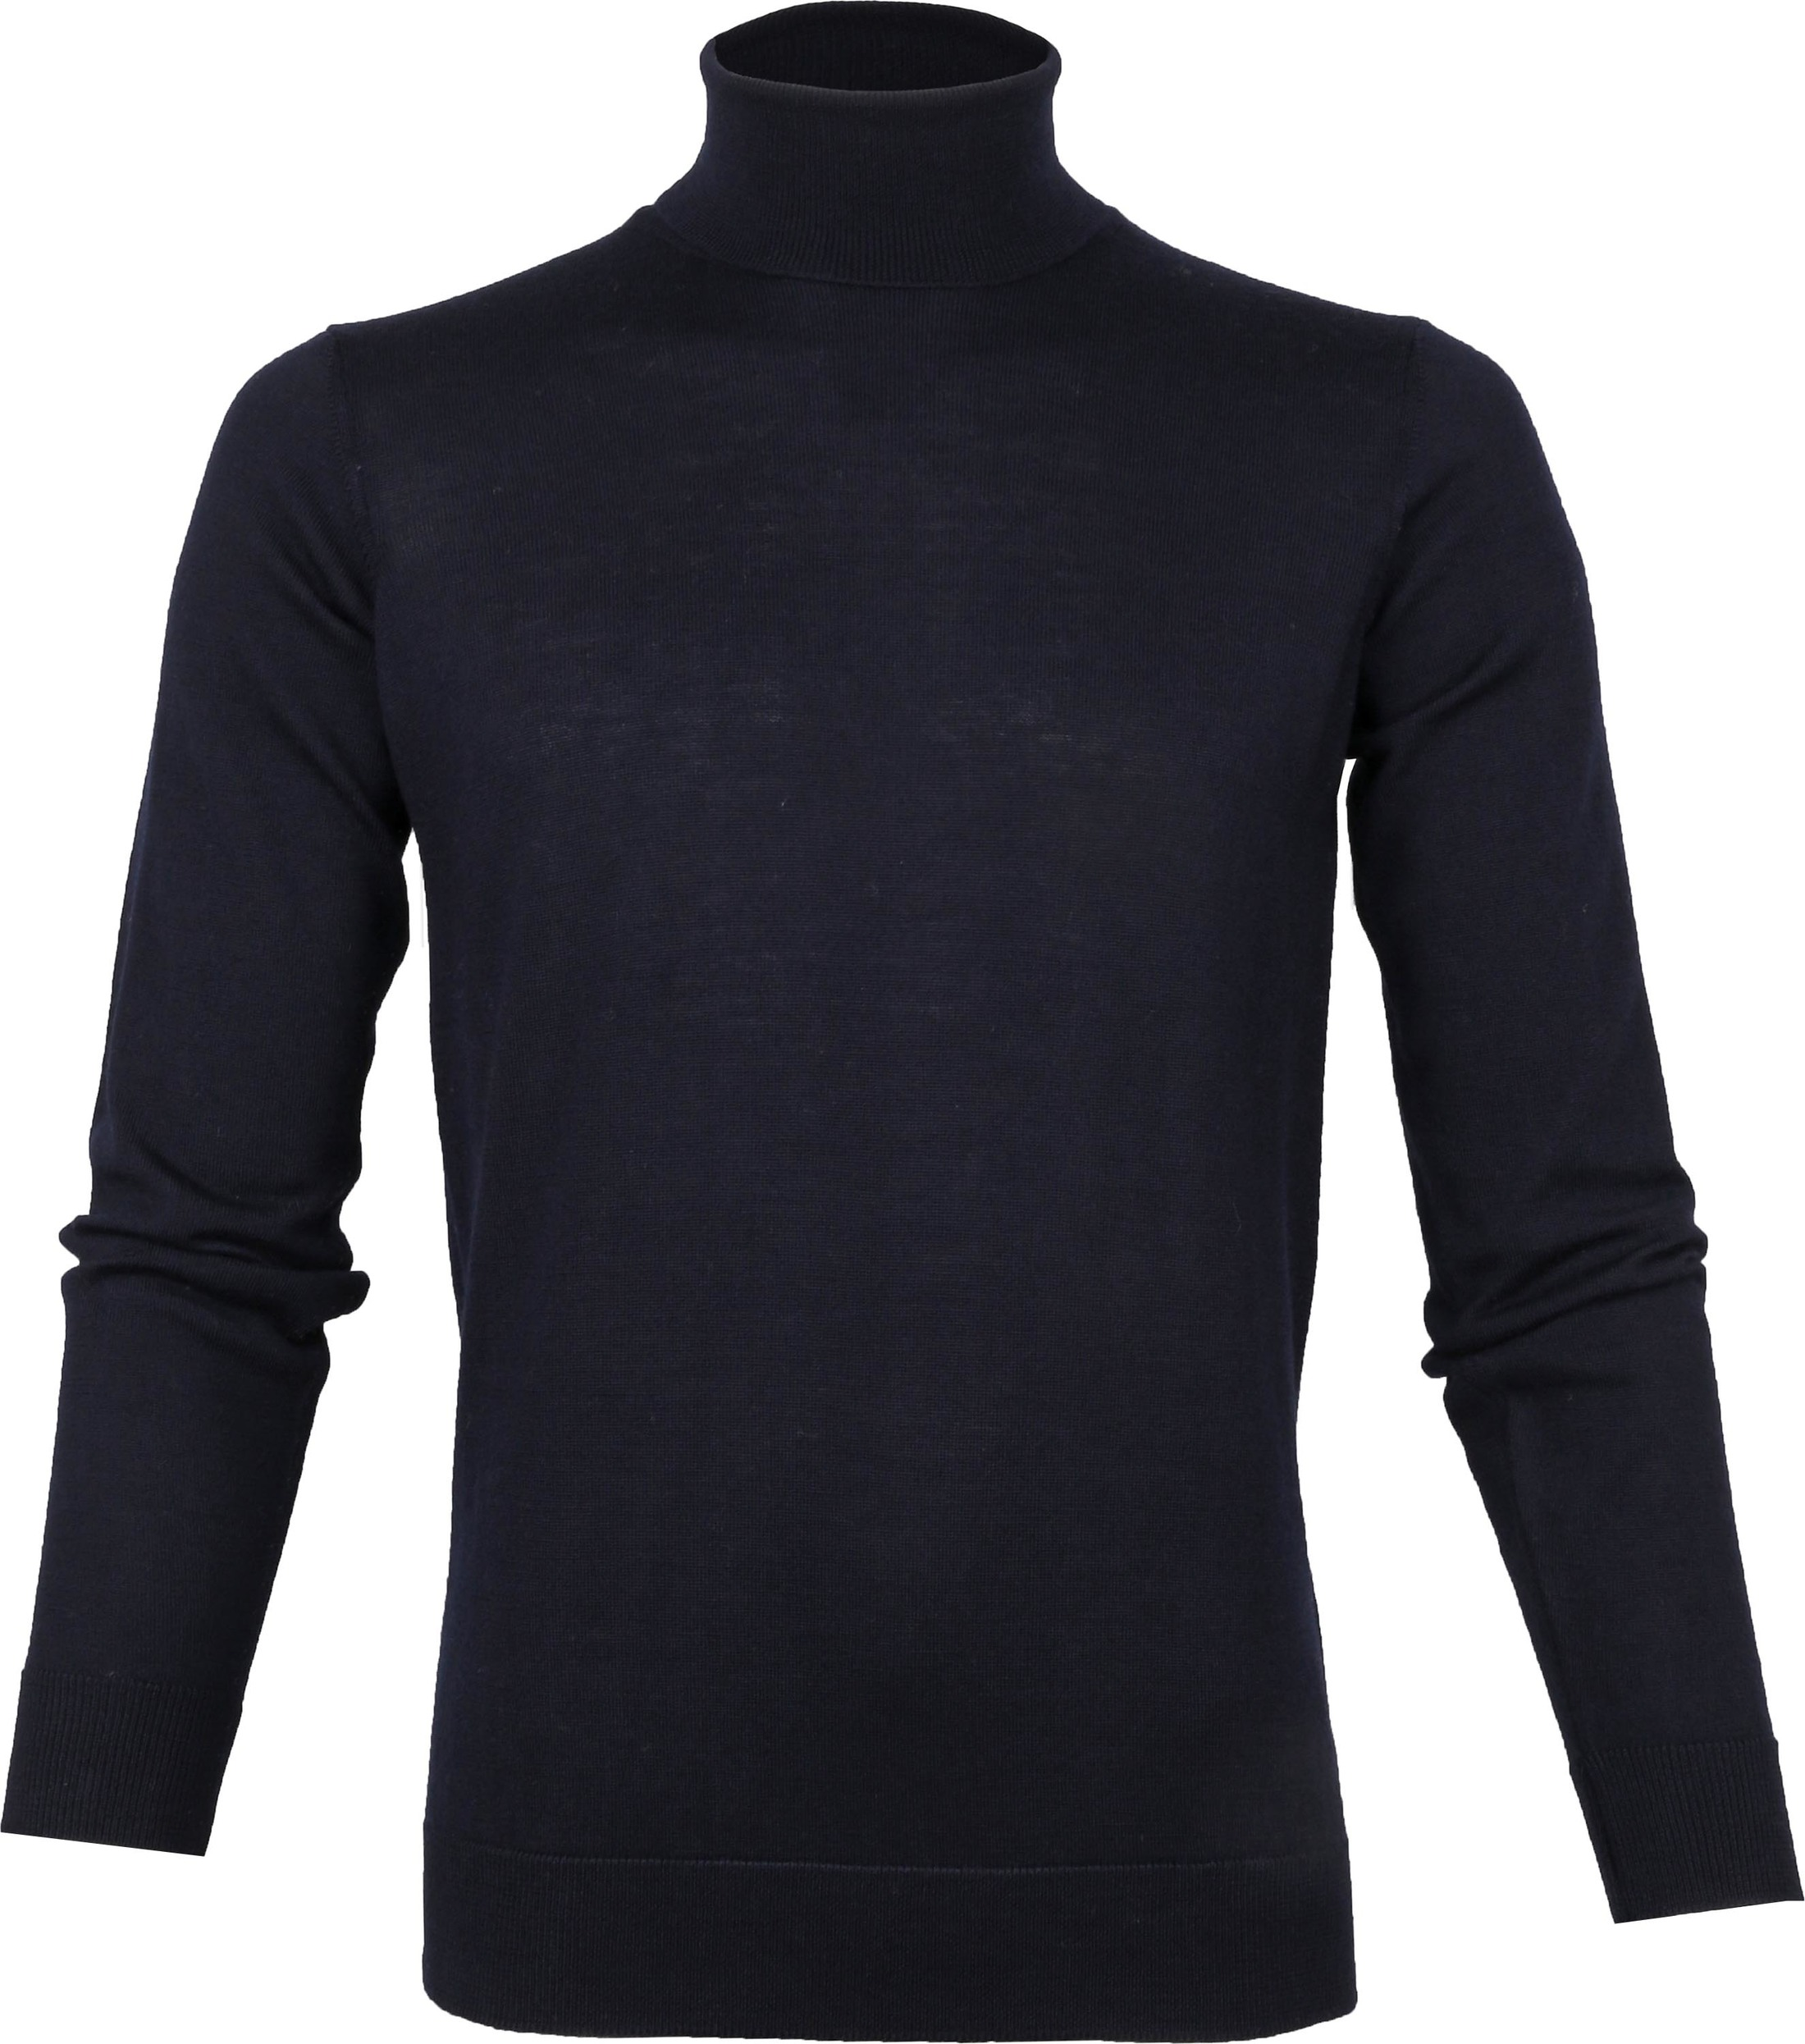 Suitable Merino 12 garen Coltrui Donkerblauw